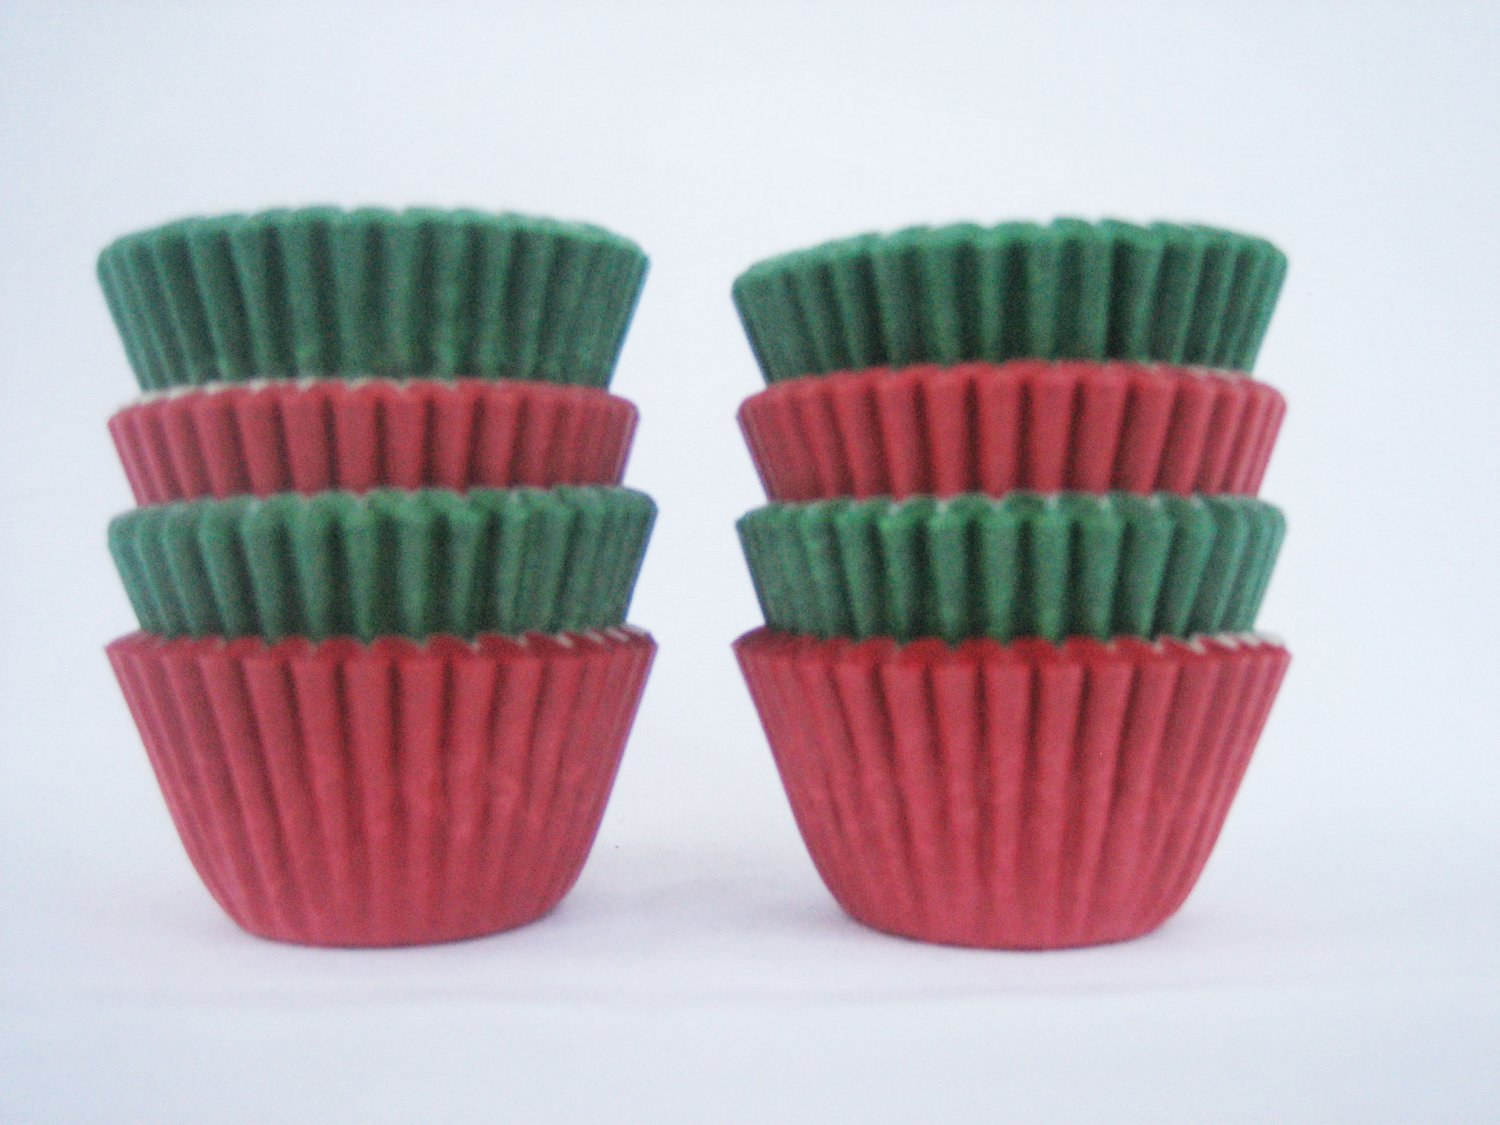 1000pcs Green and Red Mini Paper Cake Cup for Candy/Cookies/Petite/Cake 6cm